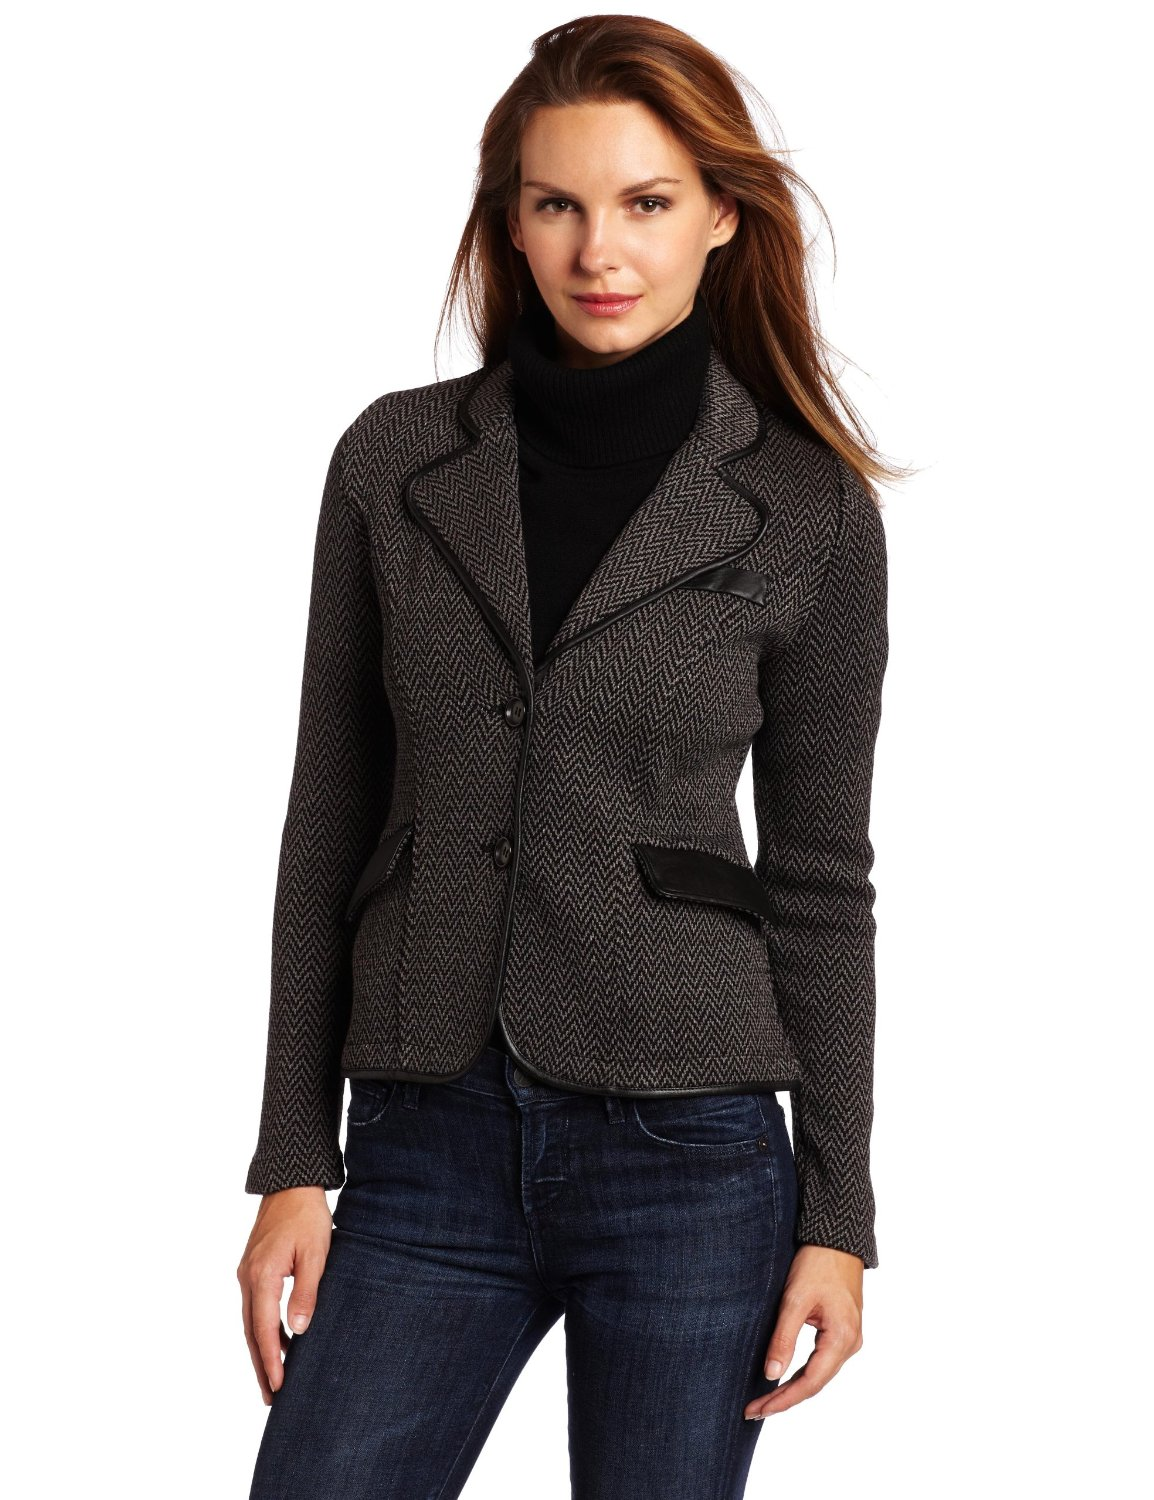 fashionable online blazers for women The options are aplenty if you are looking to add a sophisticated edge to your style. Mix and match your everyday outfits with stylish blazers to create impressive looks.